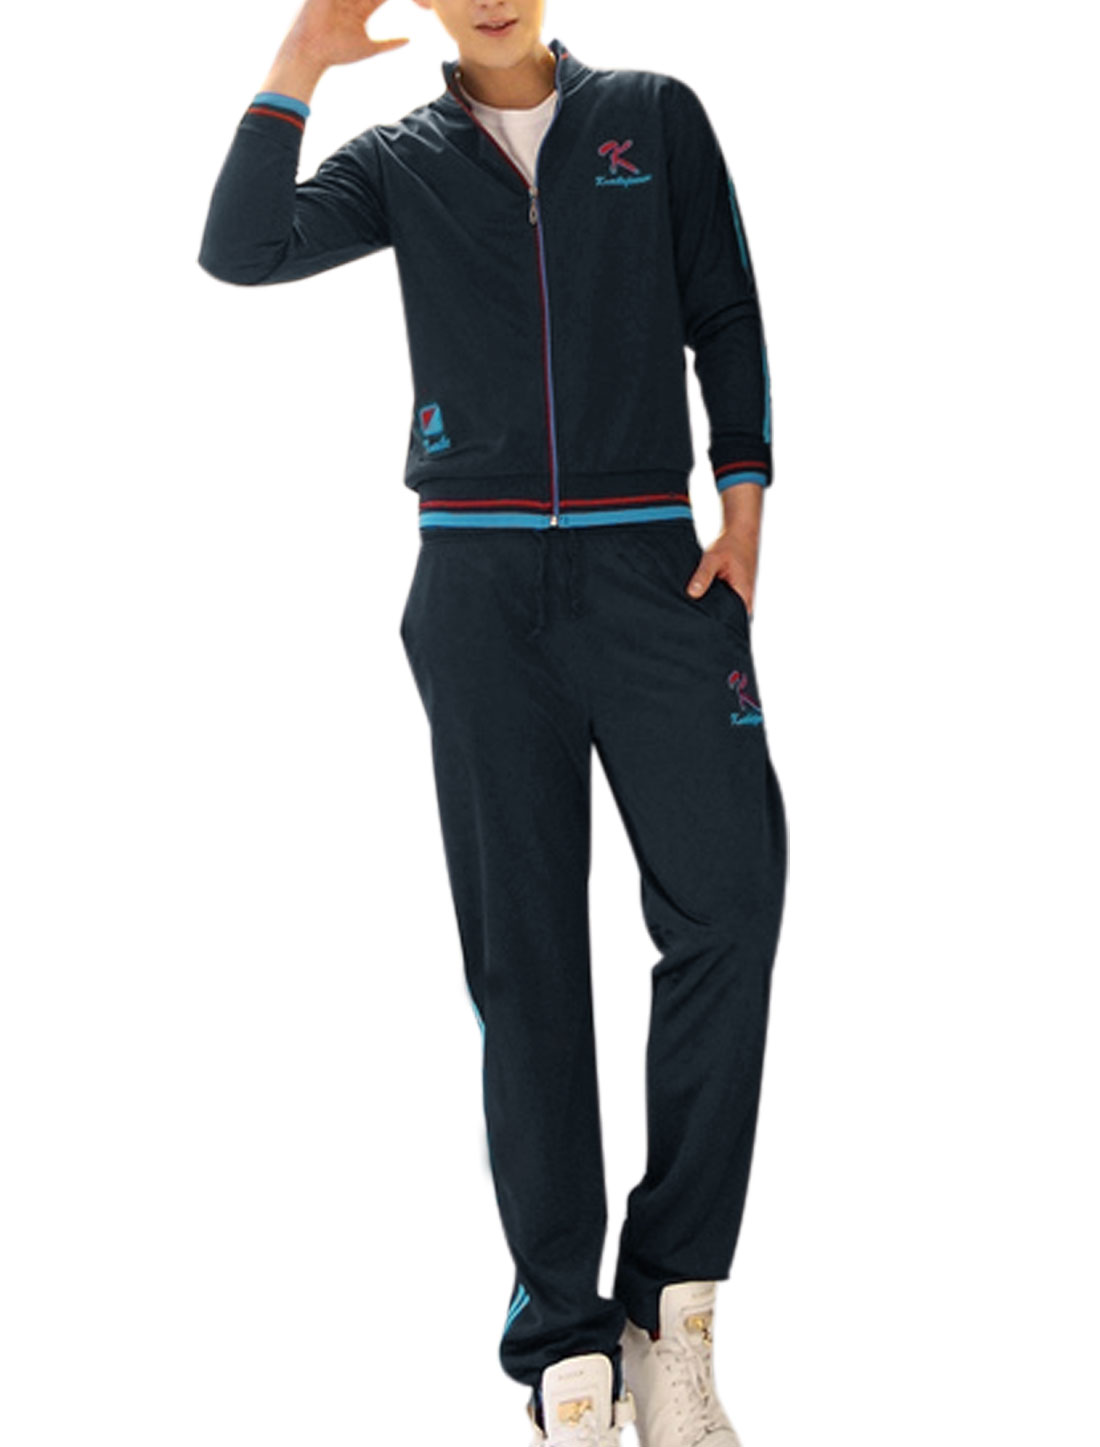 Men's Stand Collar Long Sleeve Tracksuit Jacket w Side Pockets Pants Navy S